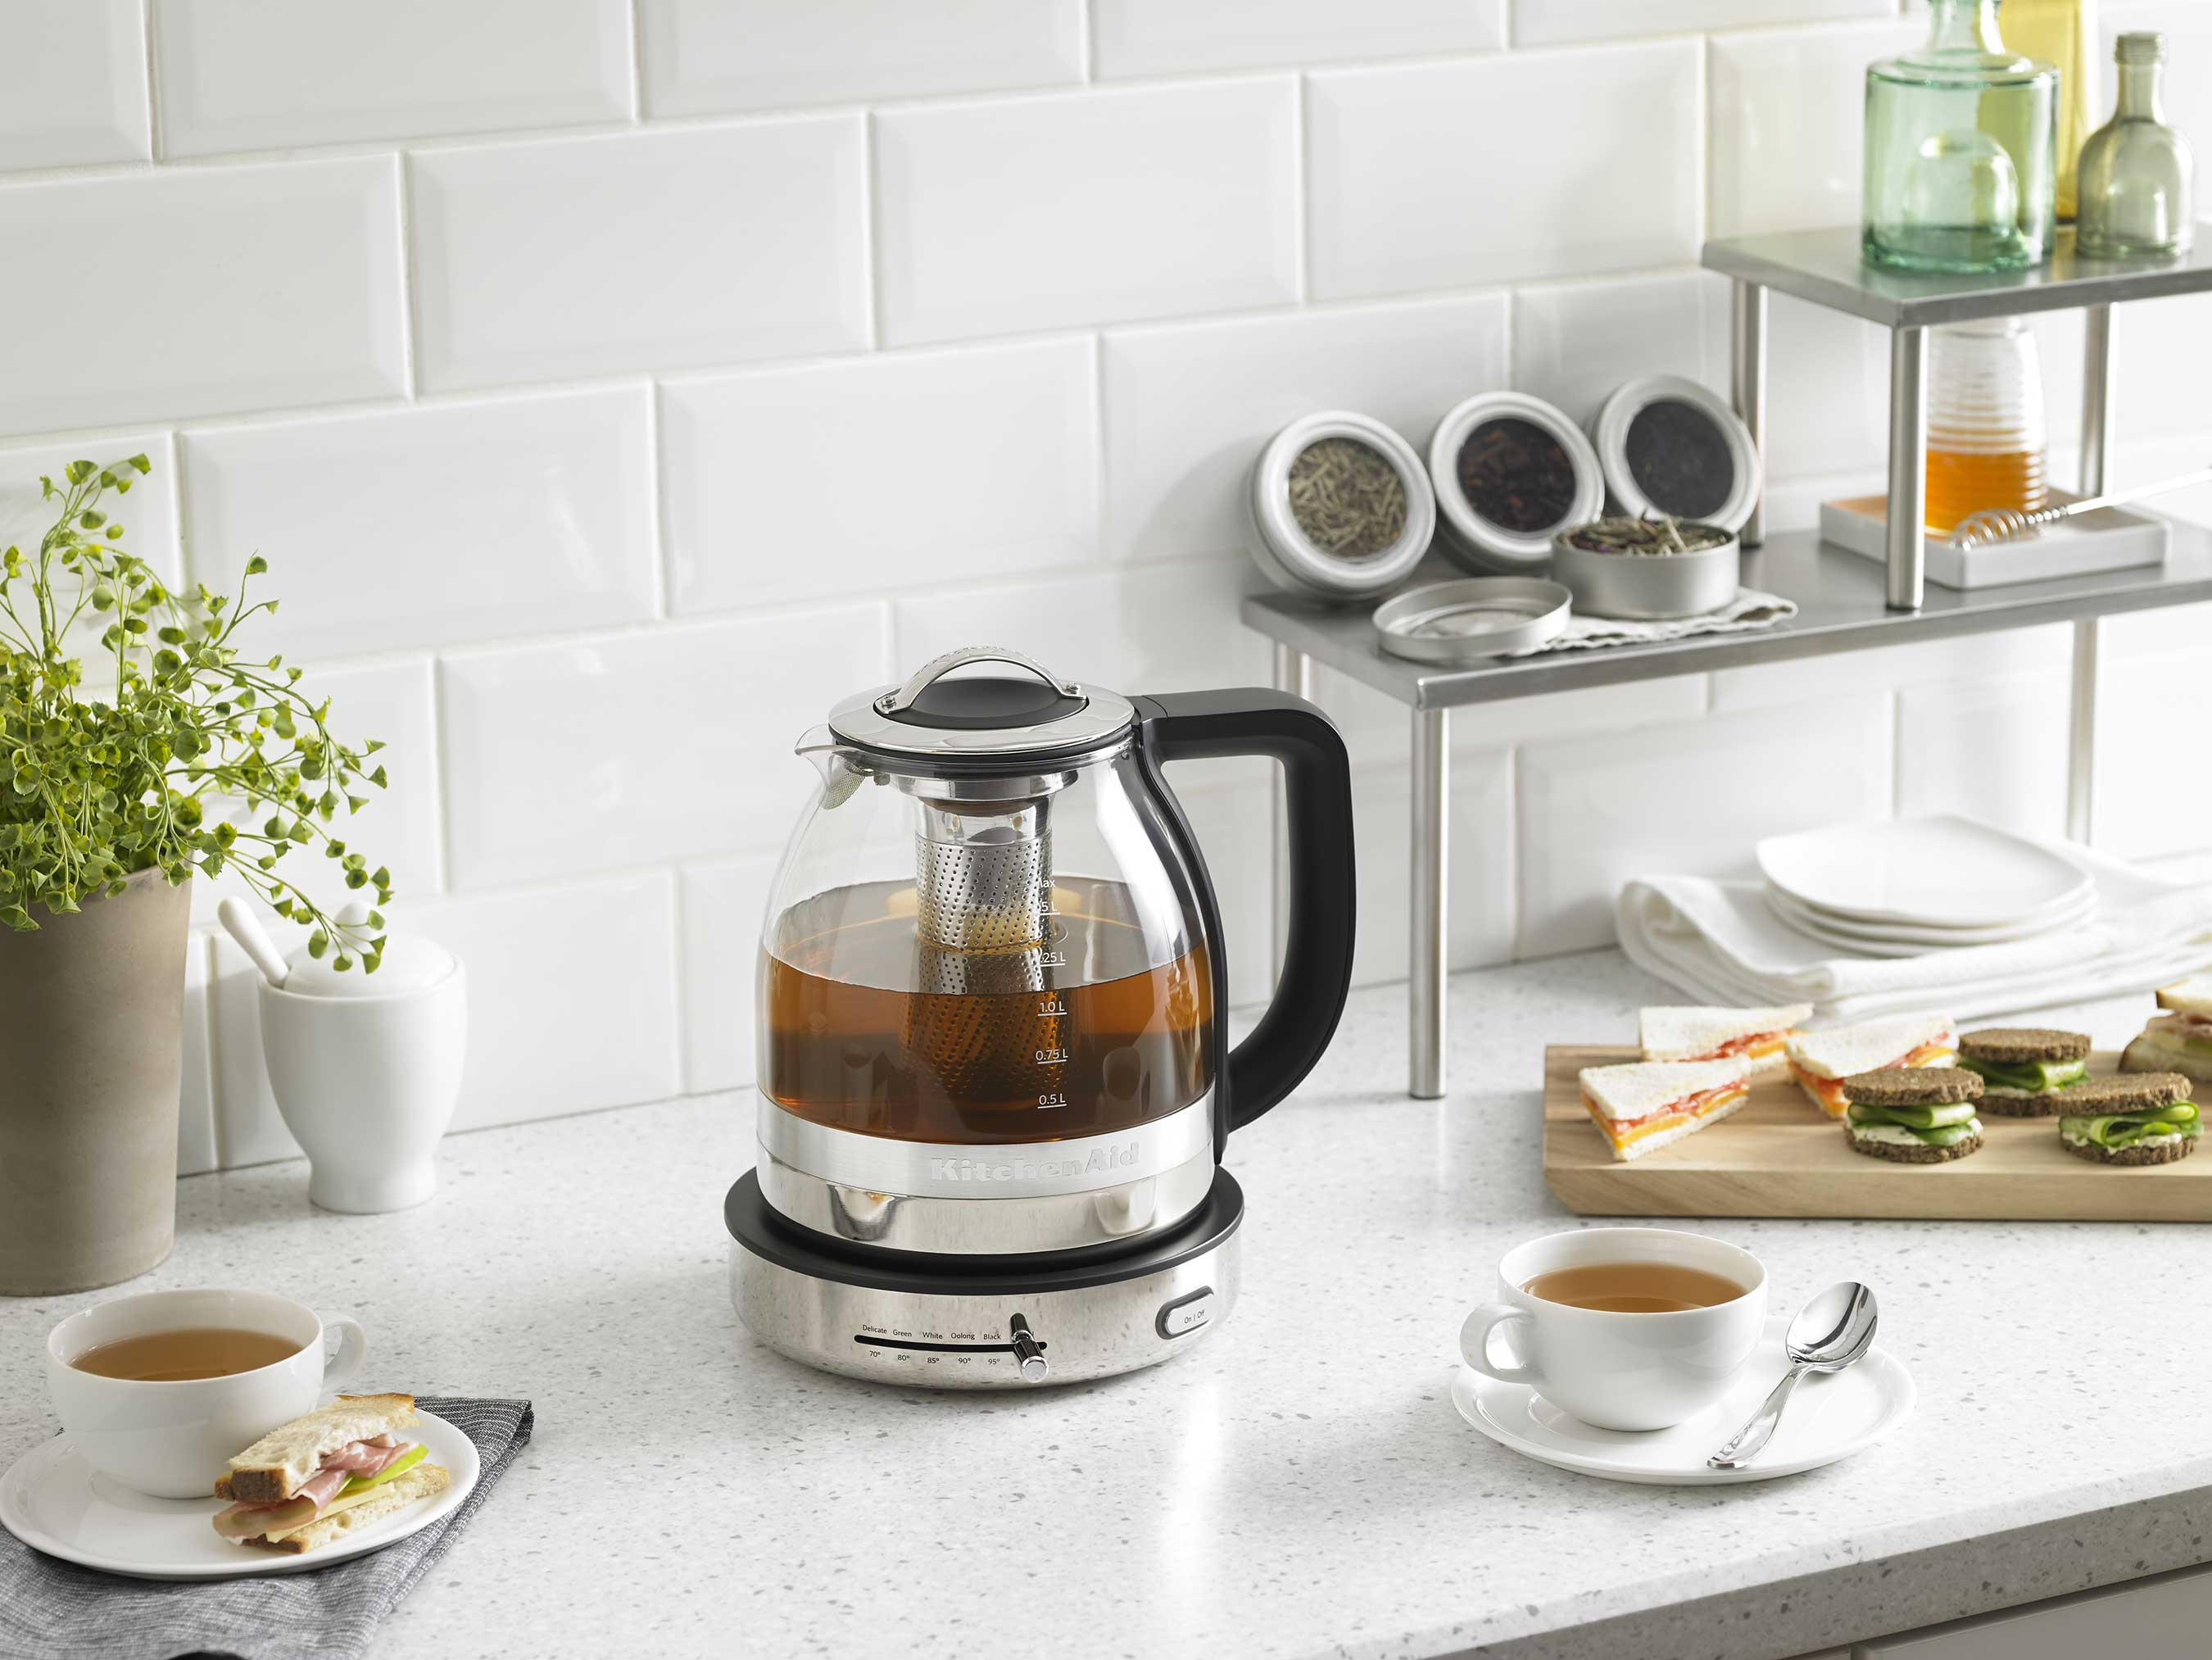 New Kitchenaid Glass Tea Kettle Is A Tea Lover S Dream